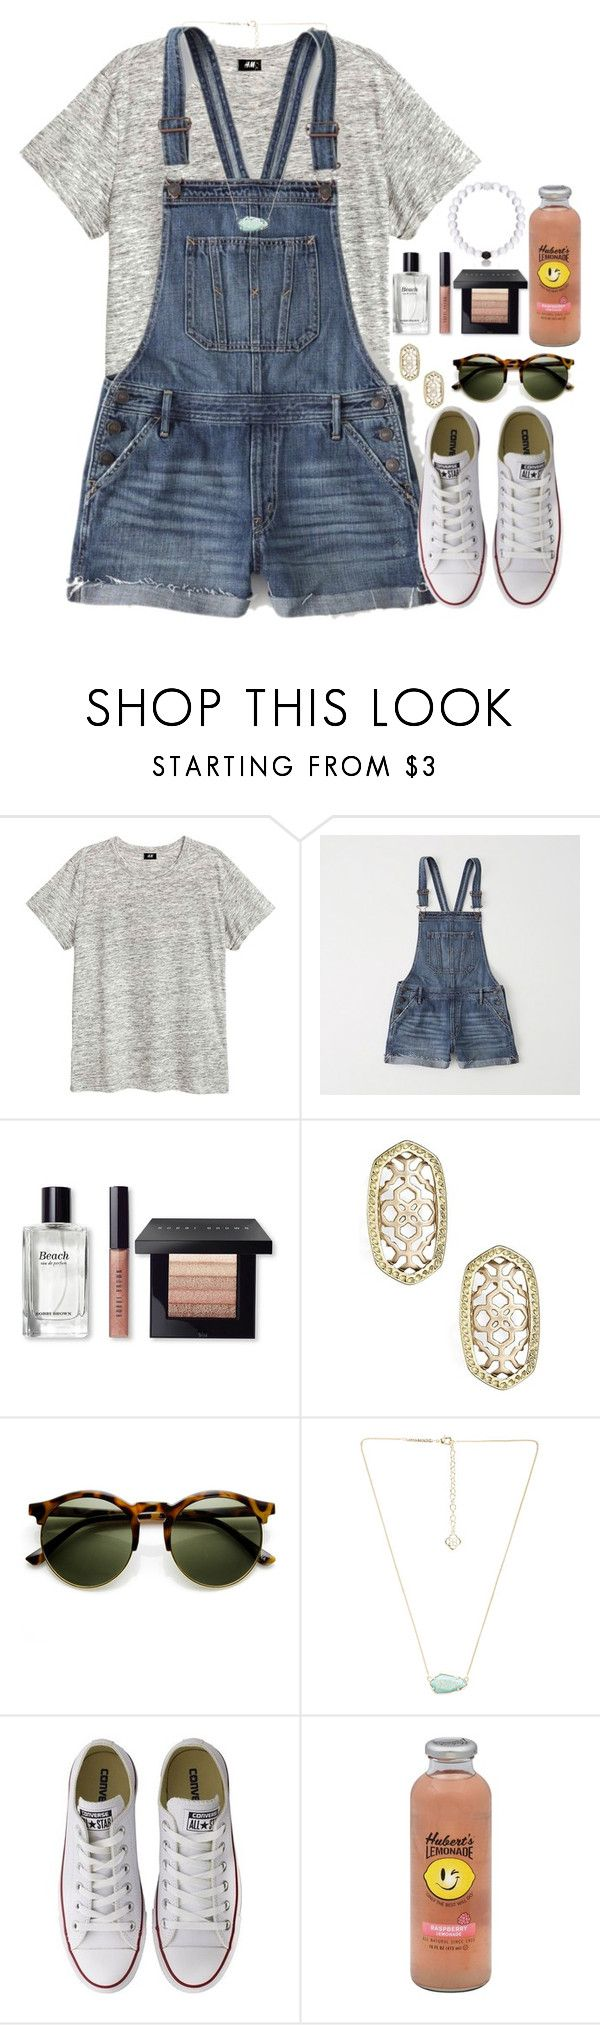 """""""~summer dayz~"""" by flroasburn on Polyvore featuring Abercrombie & Fitch, Bobbi Brown Cosmetics, Kendra Scott, Converse and Hansen"""